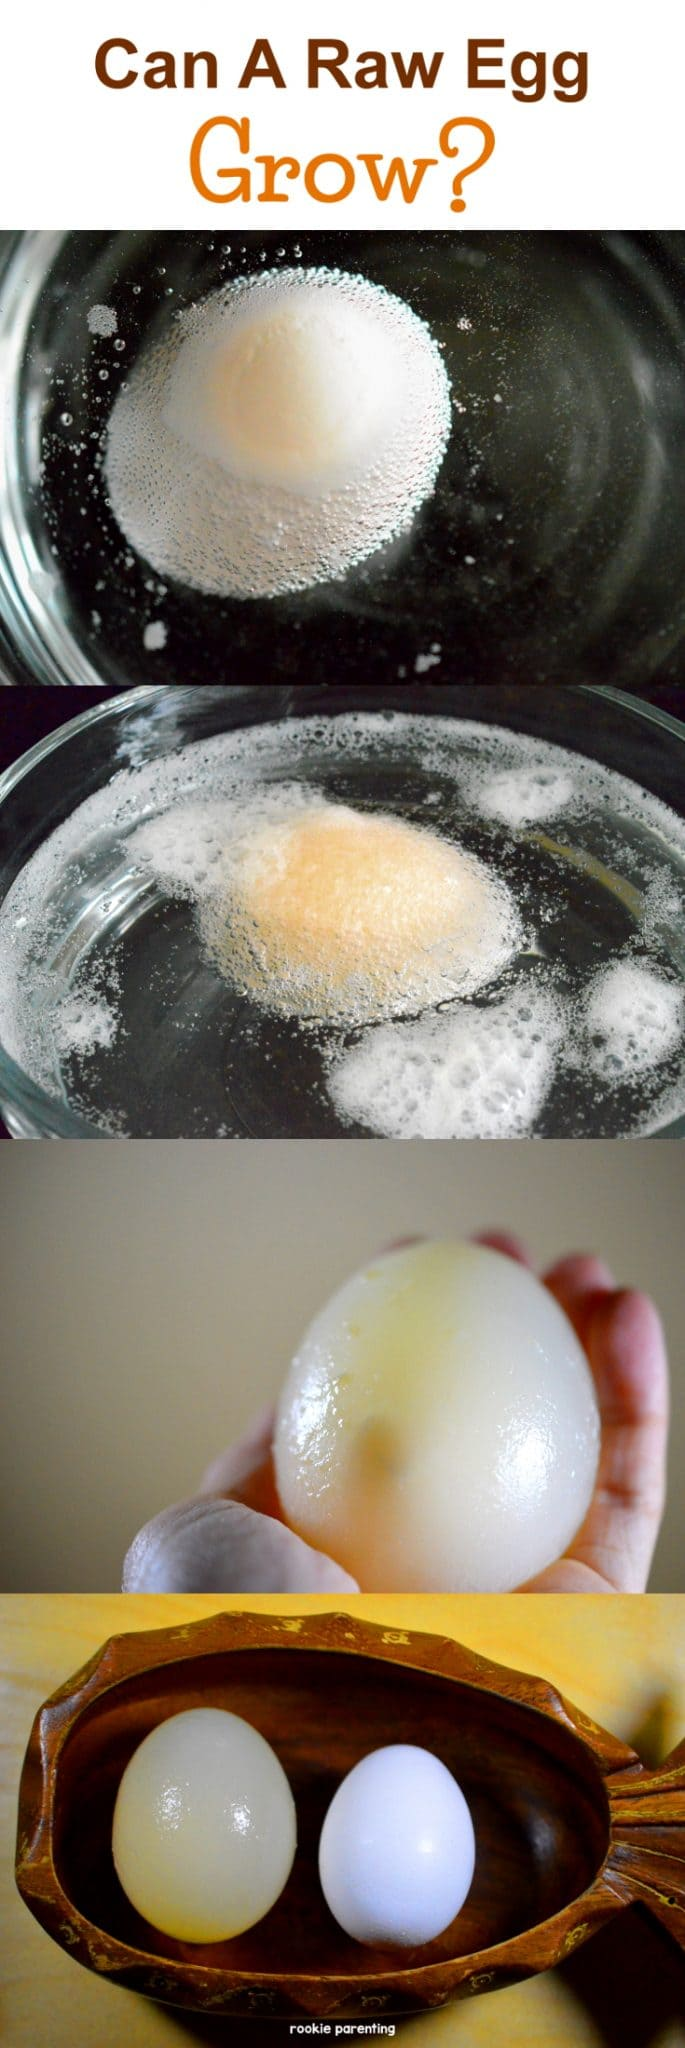 Using vinegar, you can make a raw egg grow bigger, hold it in your bare hand and bounce it up and down. It's amazing!